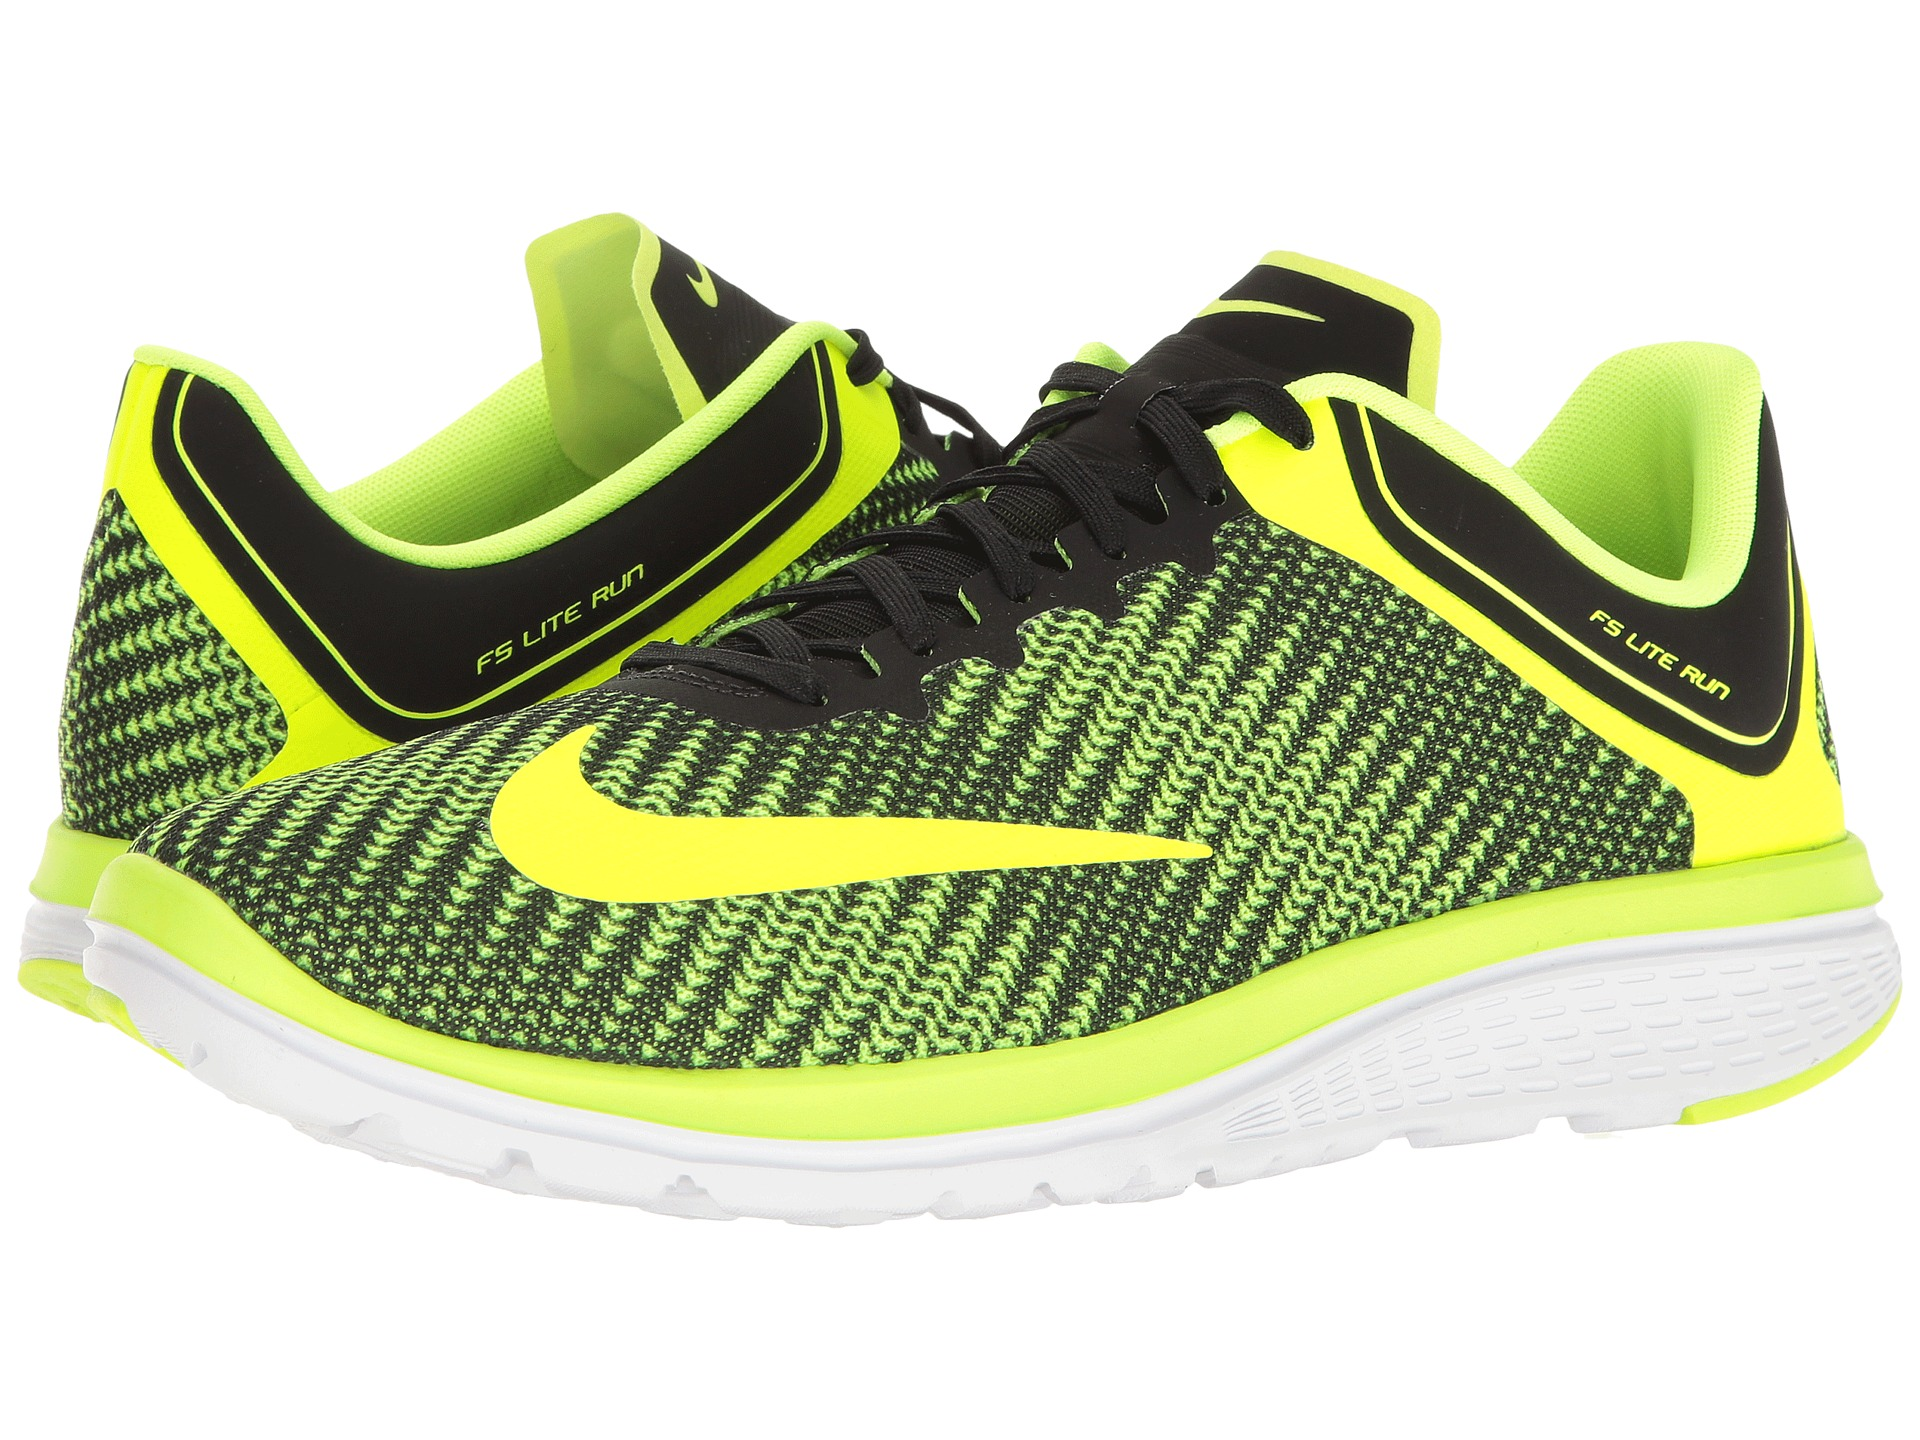 Nike Women's Nike Fs Lite Run 3 Running Shoes: in: Shoes